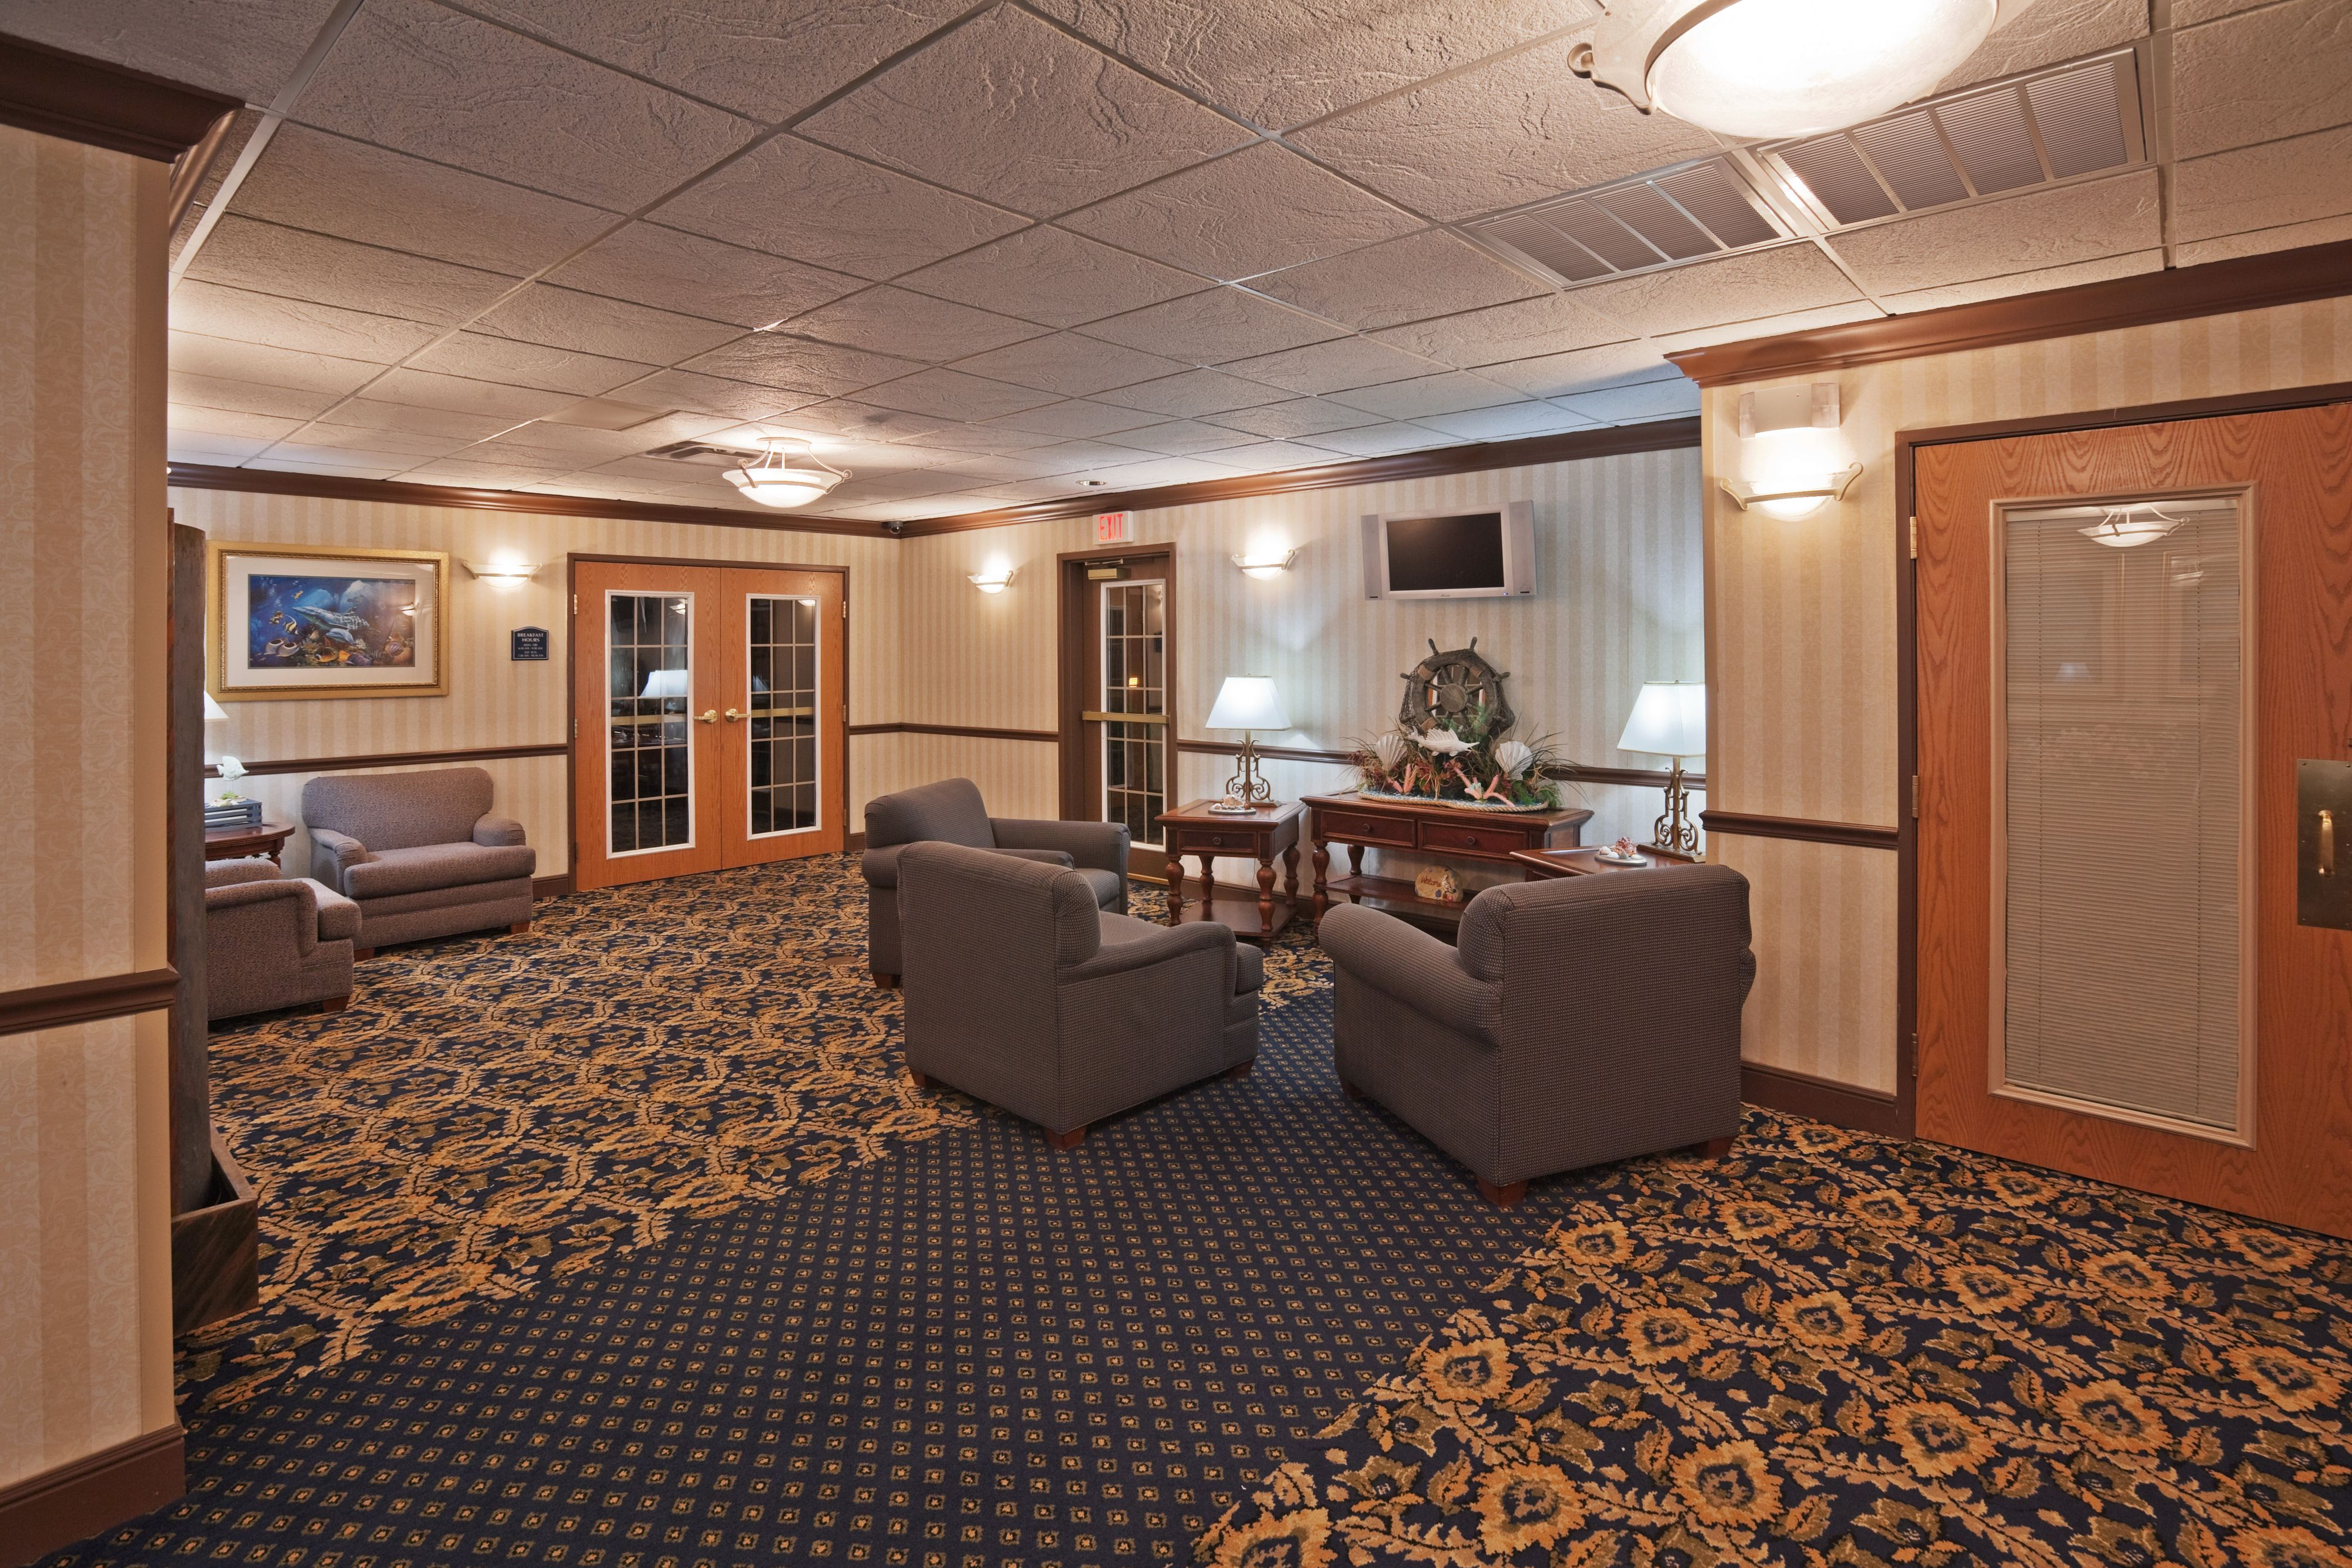 Holiday Inn Express & Suites Jenks image 5